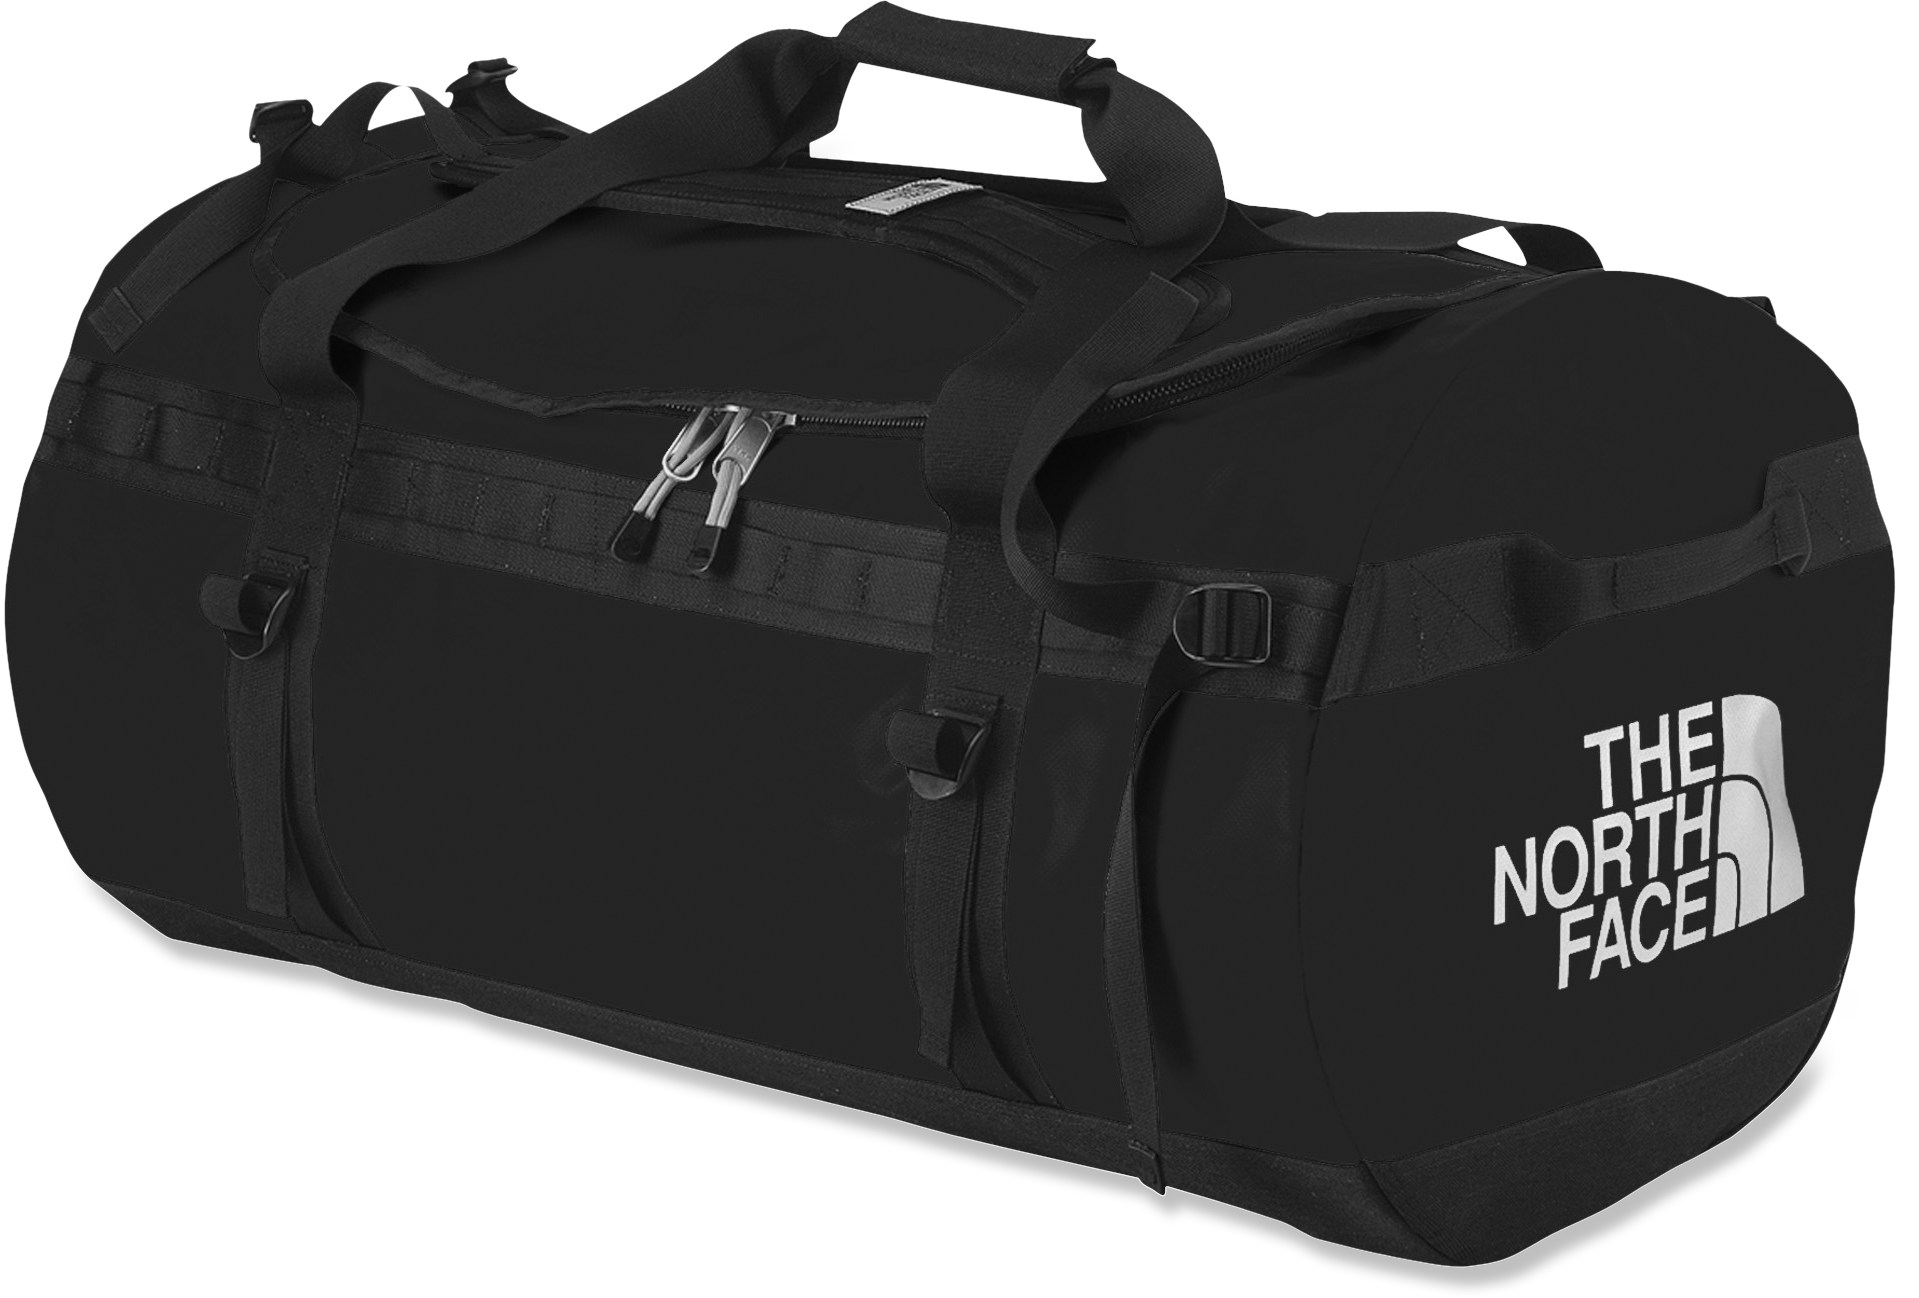 north face duffel bag adventure international 39 s blog. Black Bedroom Furniture Sets. Home Design Ideas